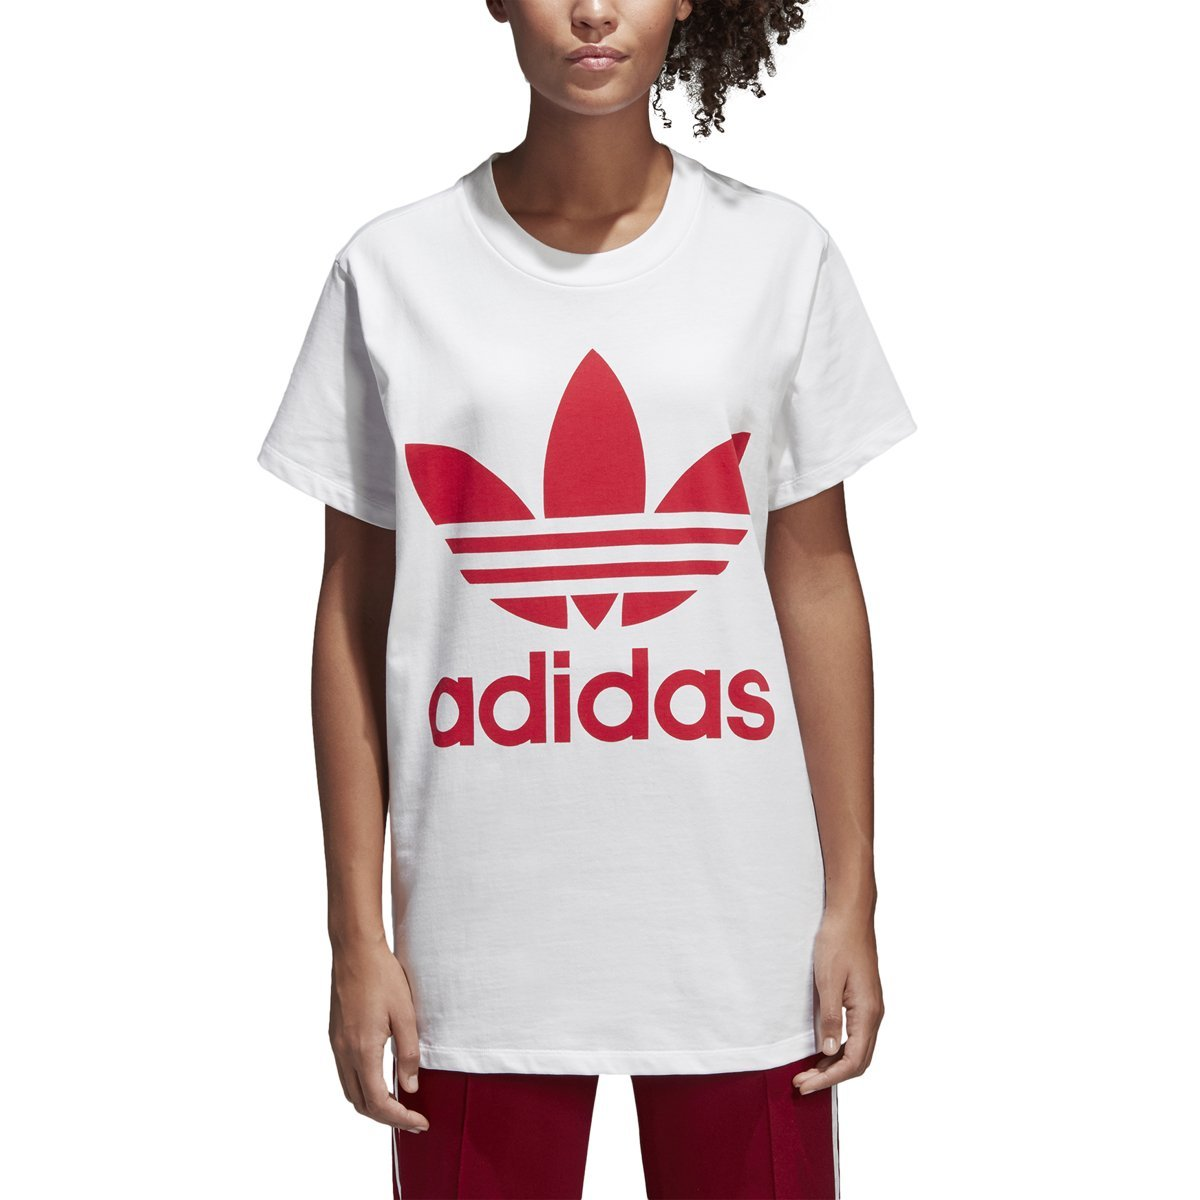 adidas Originals Women's Trefoil Tee, White/Radiant Red, XS